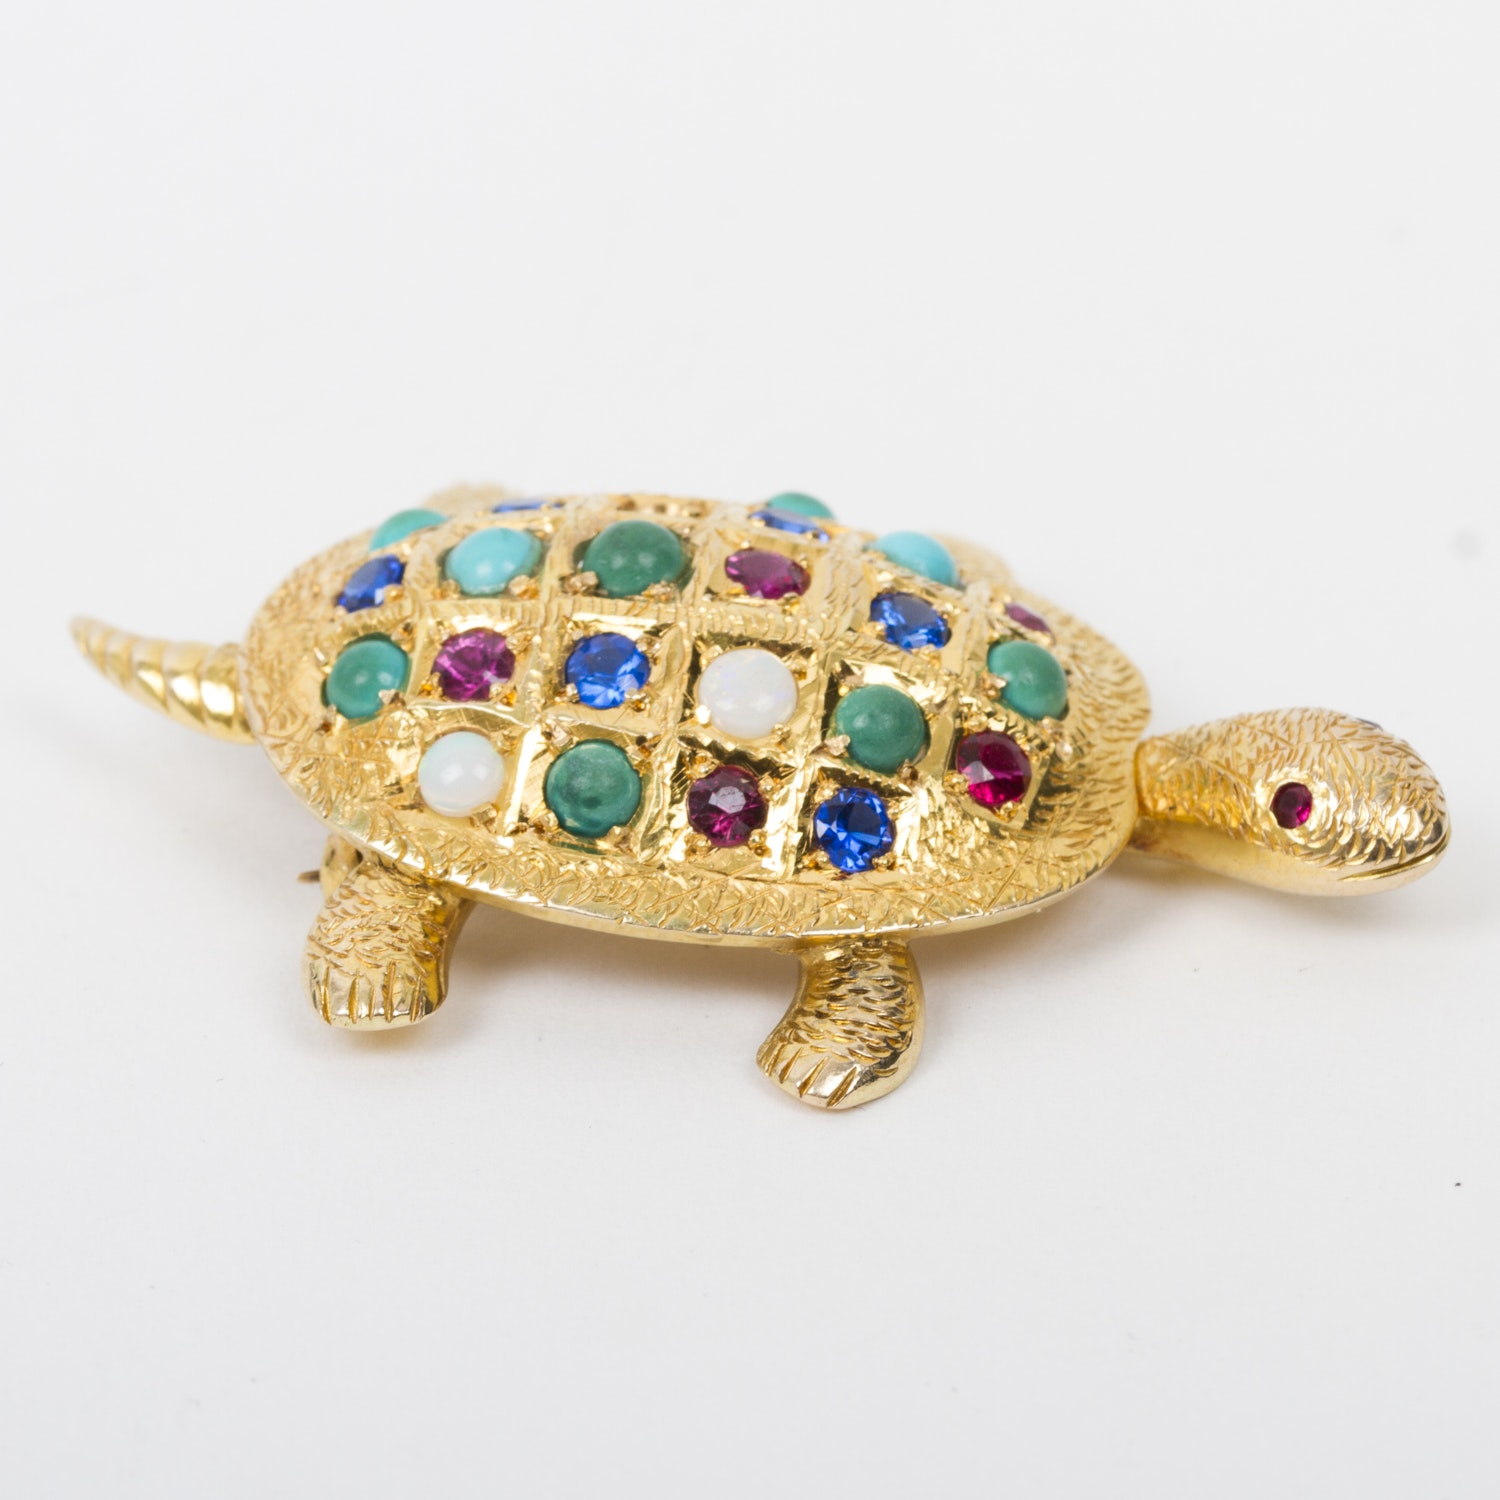 18K Yellow Gold and Multi-Stone Turtle Brooch